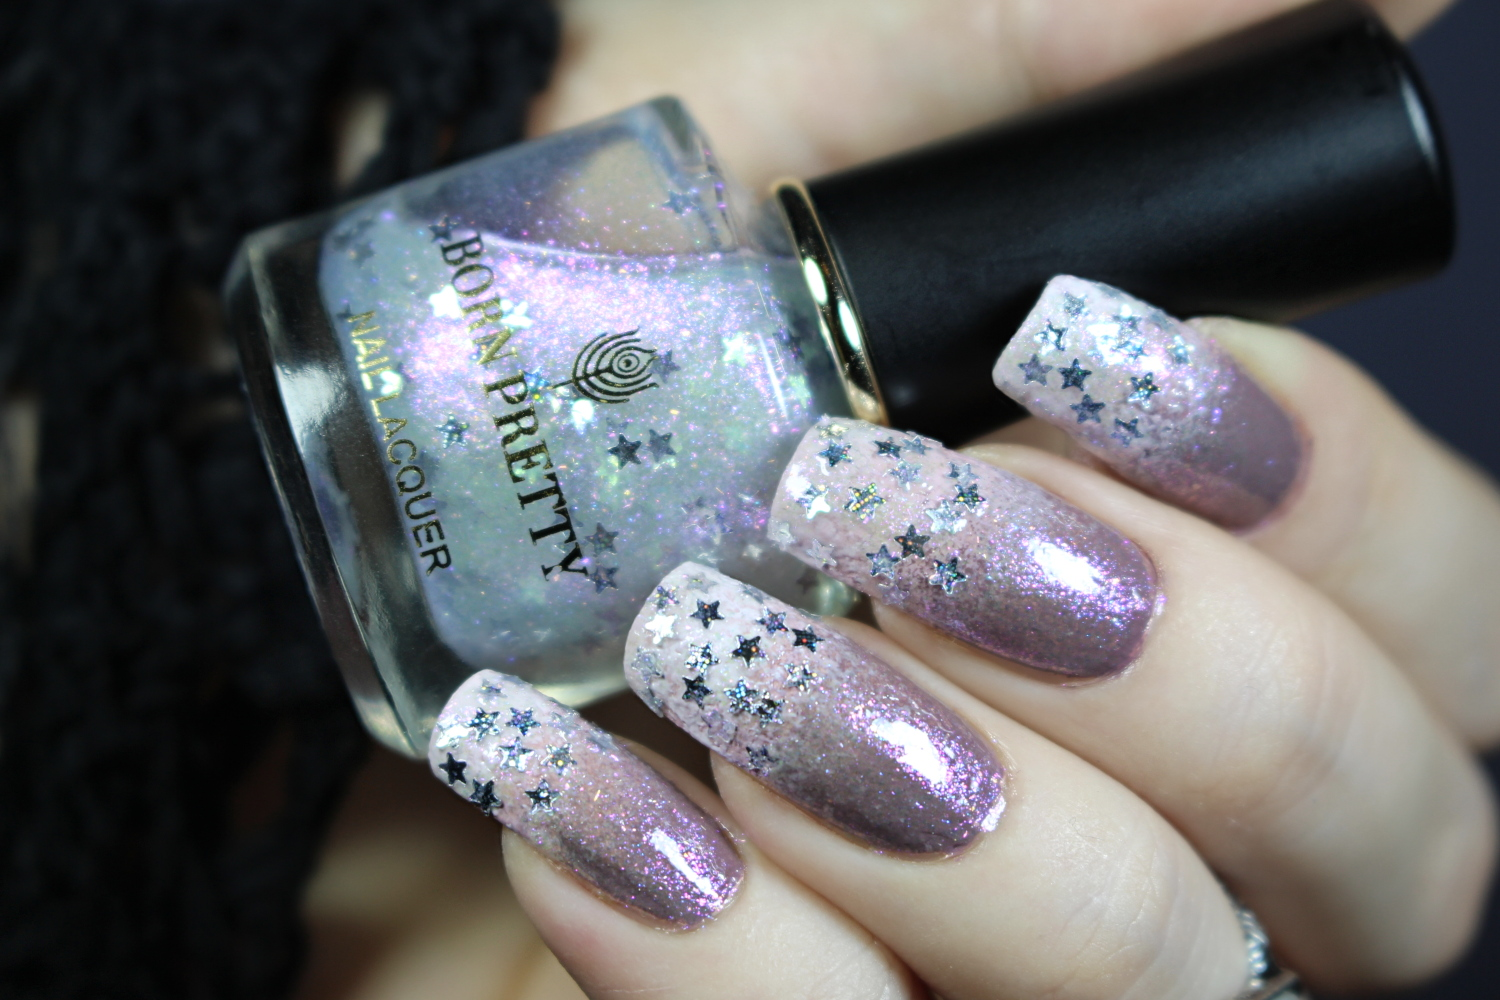 beautiful sparkly manicure in lilac and white colors